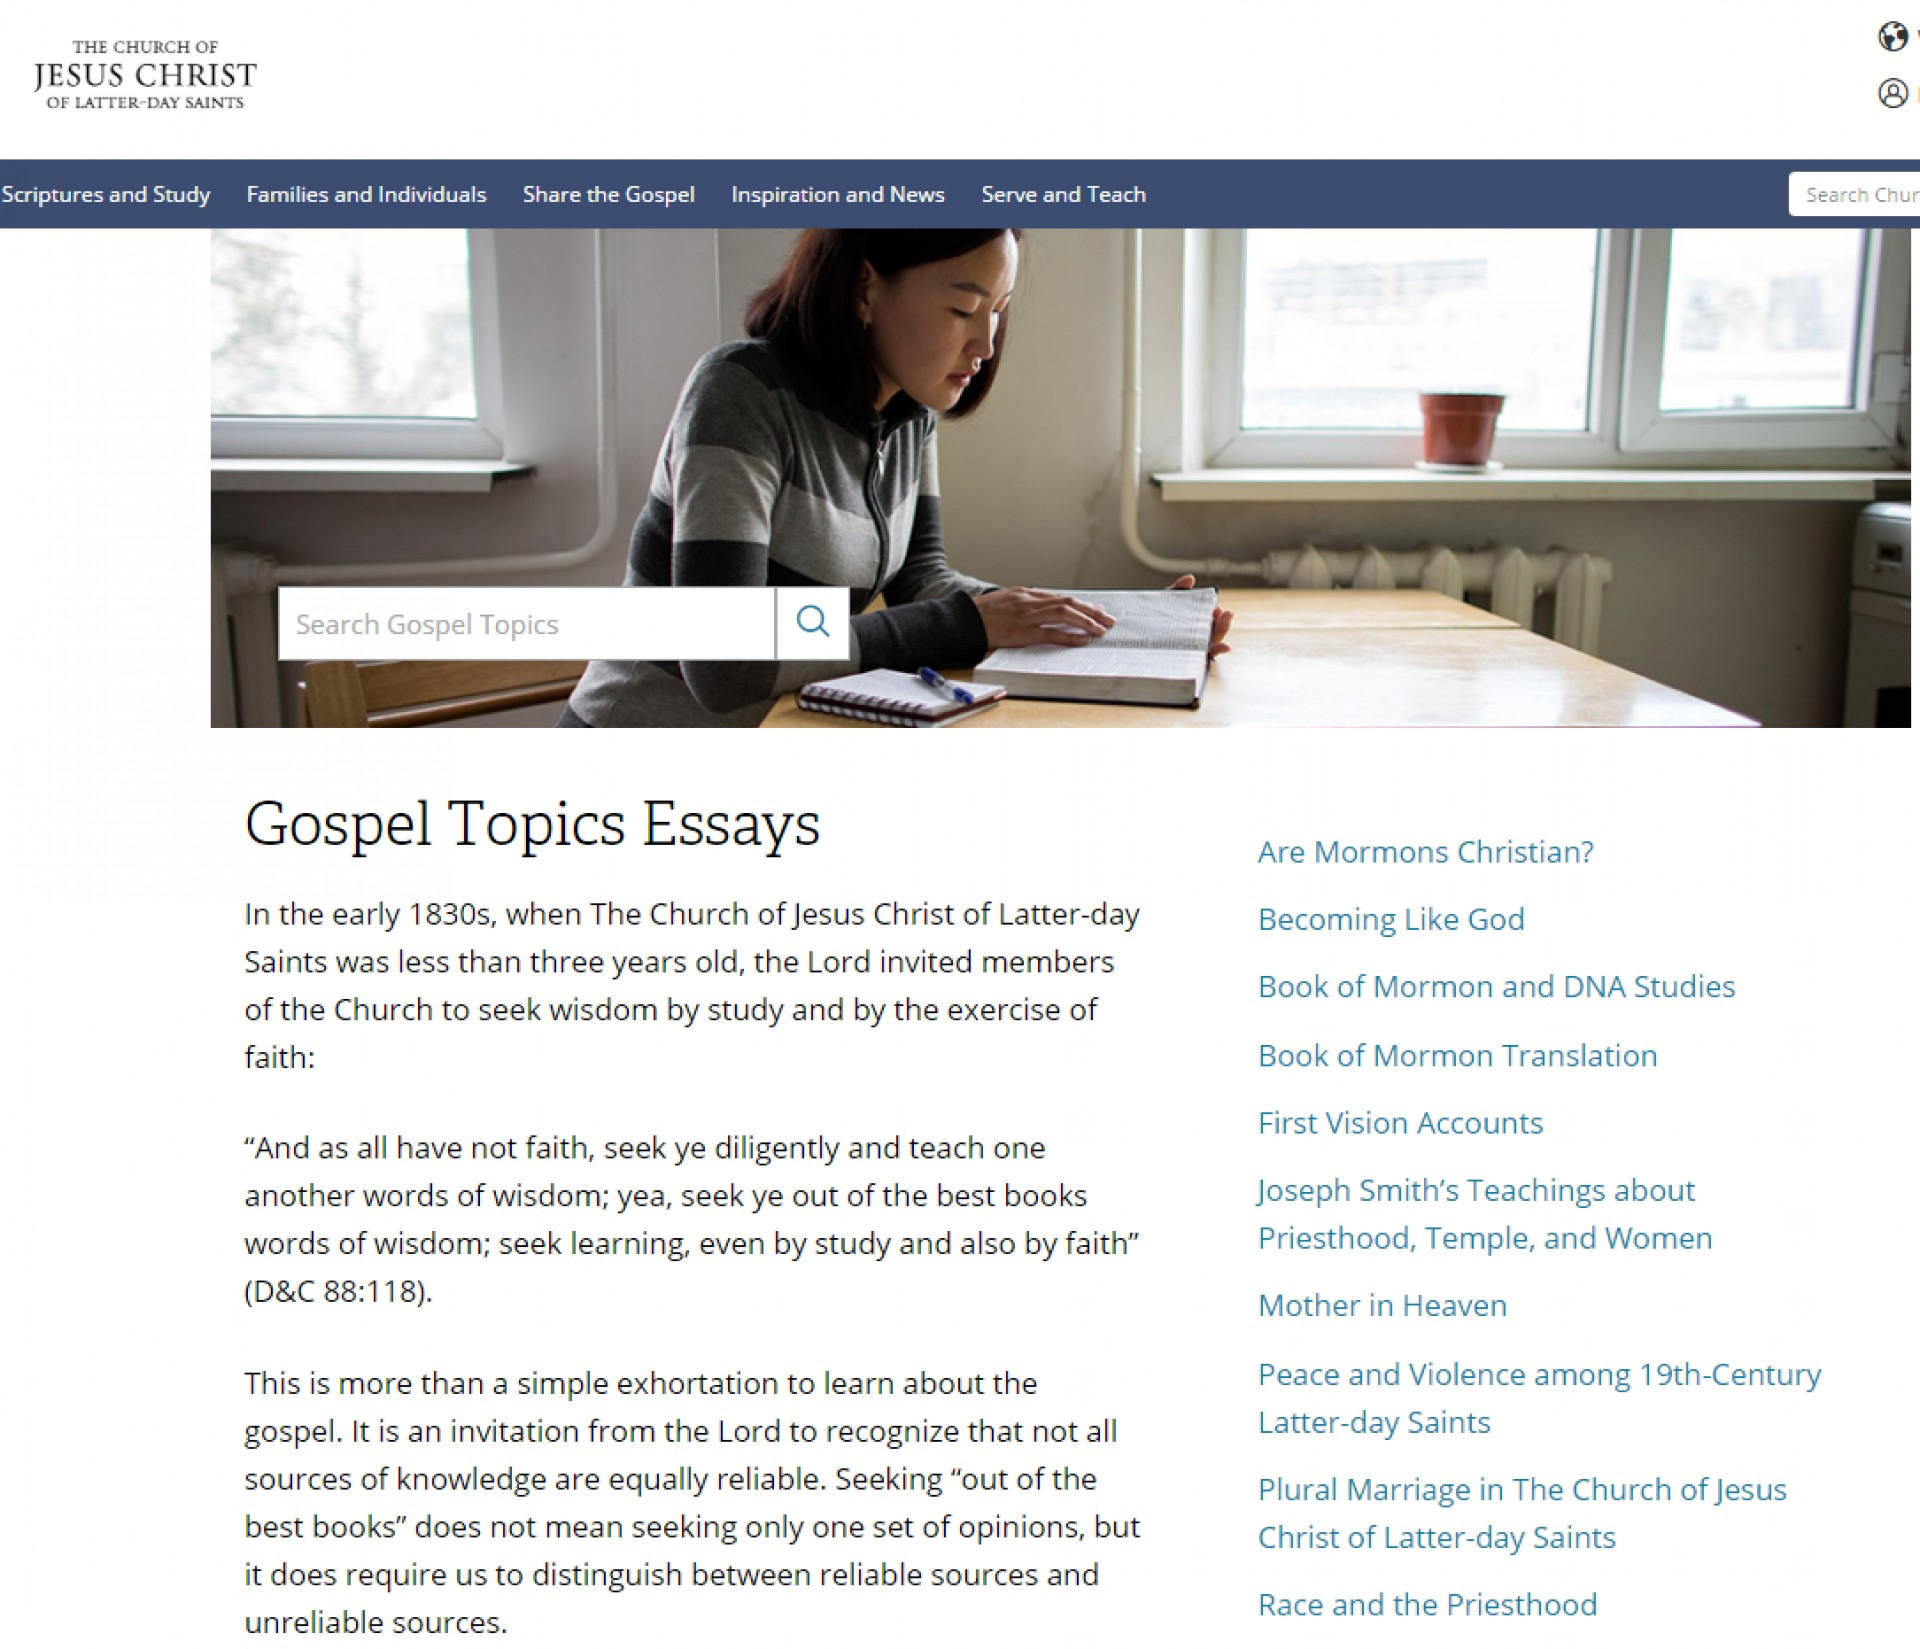 008 23 0556 Essay Example Gospel Topics Outstanding Essays Pdf Plural Marriage Becoming Like God 1920